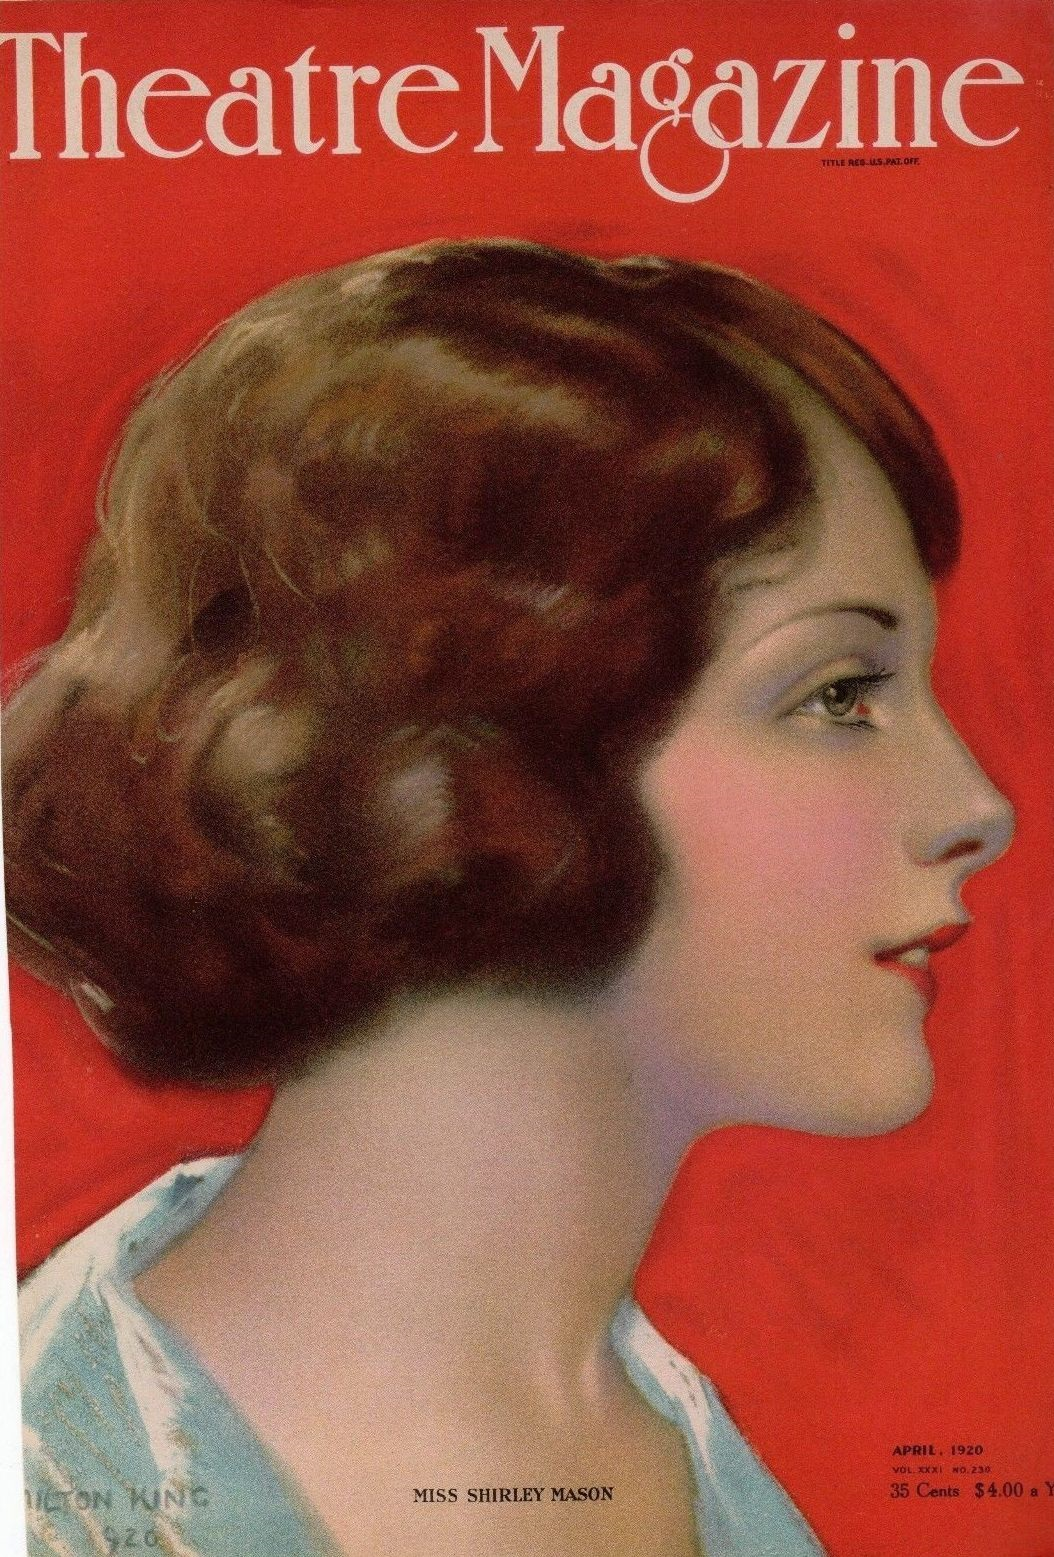 SHIRLEY-MASON-THEATRE-MAGAZINE-APRIL-1920